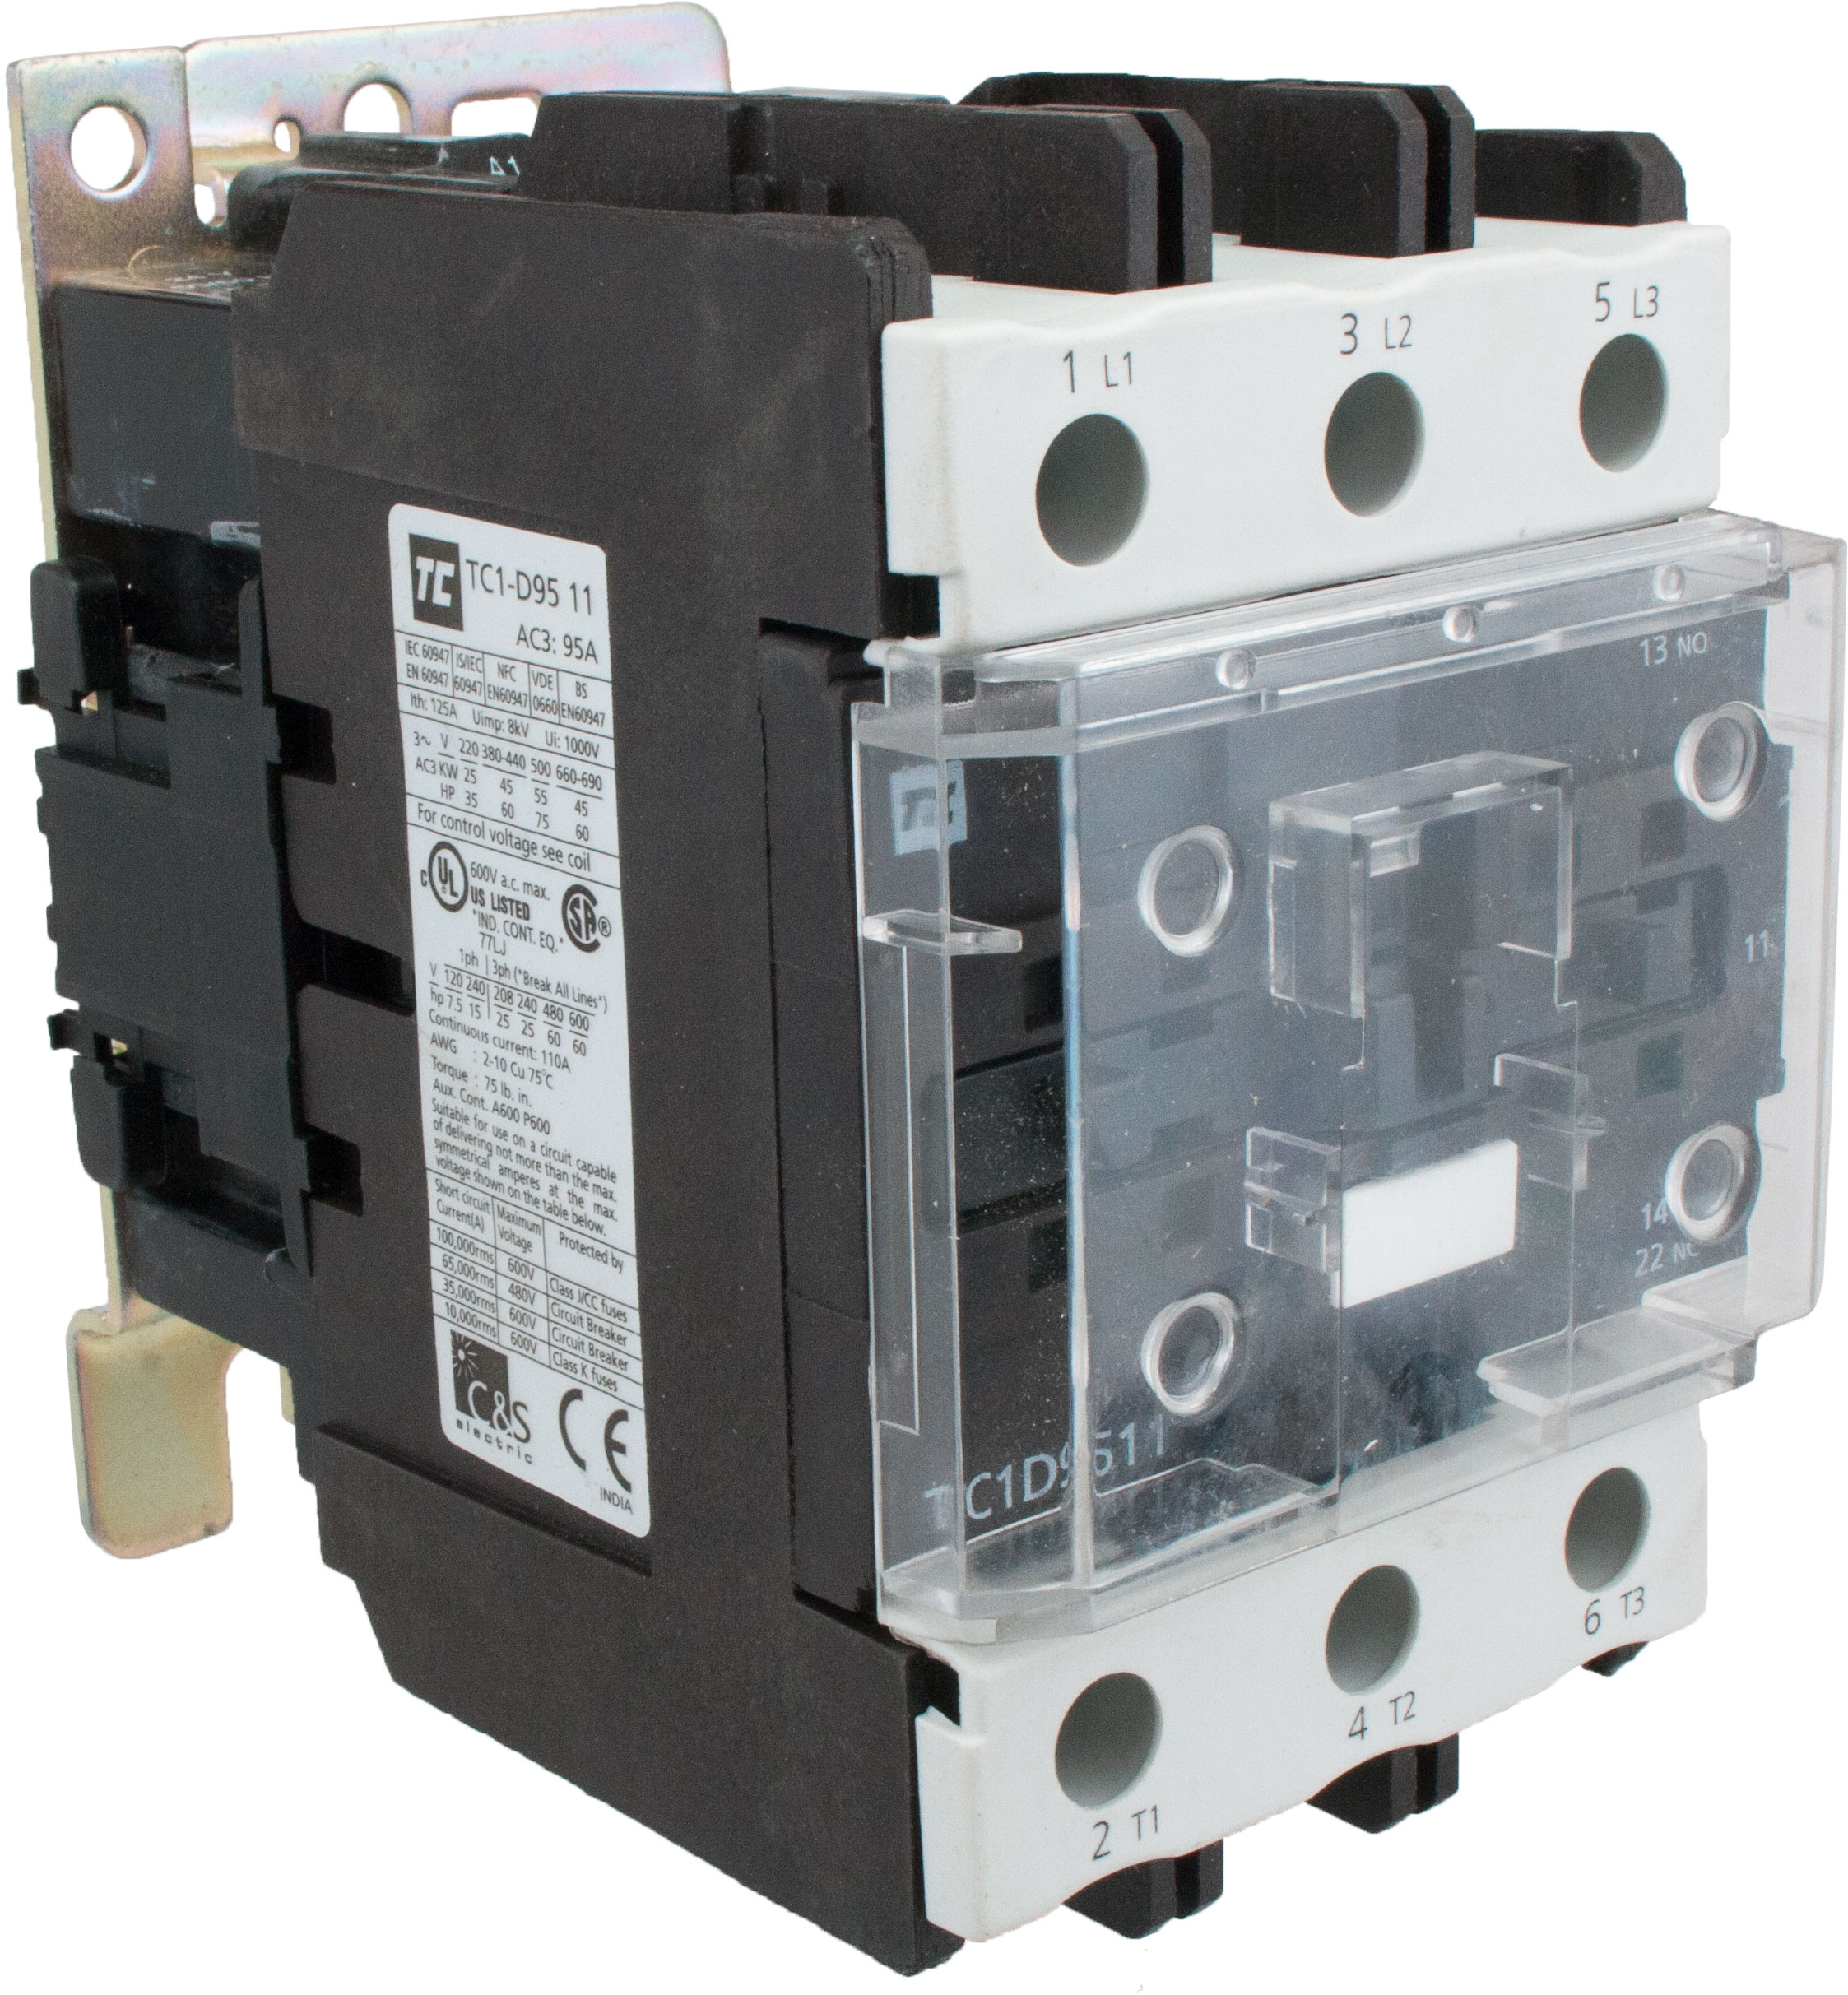 3 Pole Contactor 95 Amp 1 N O C 208 Volt Ac Coil Tc1d9511l6 Wiring Elecdirect